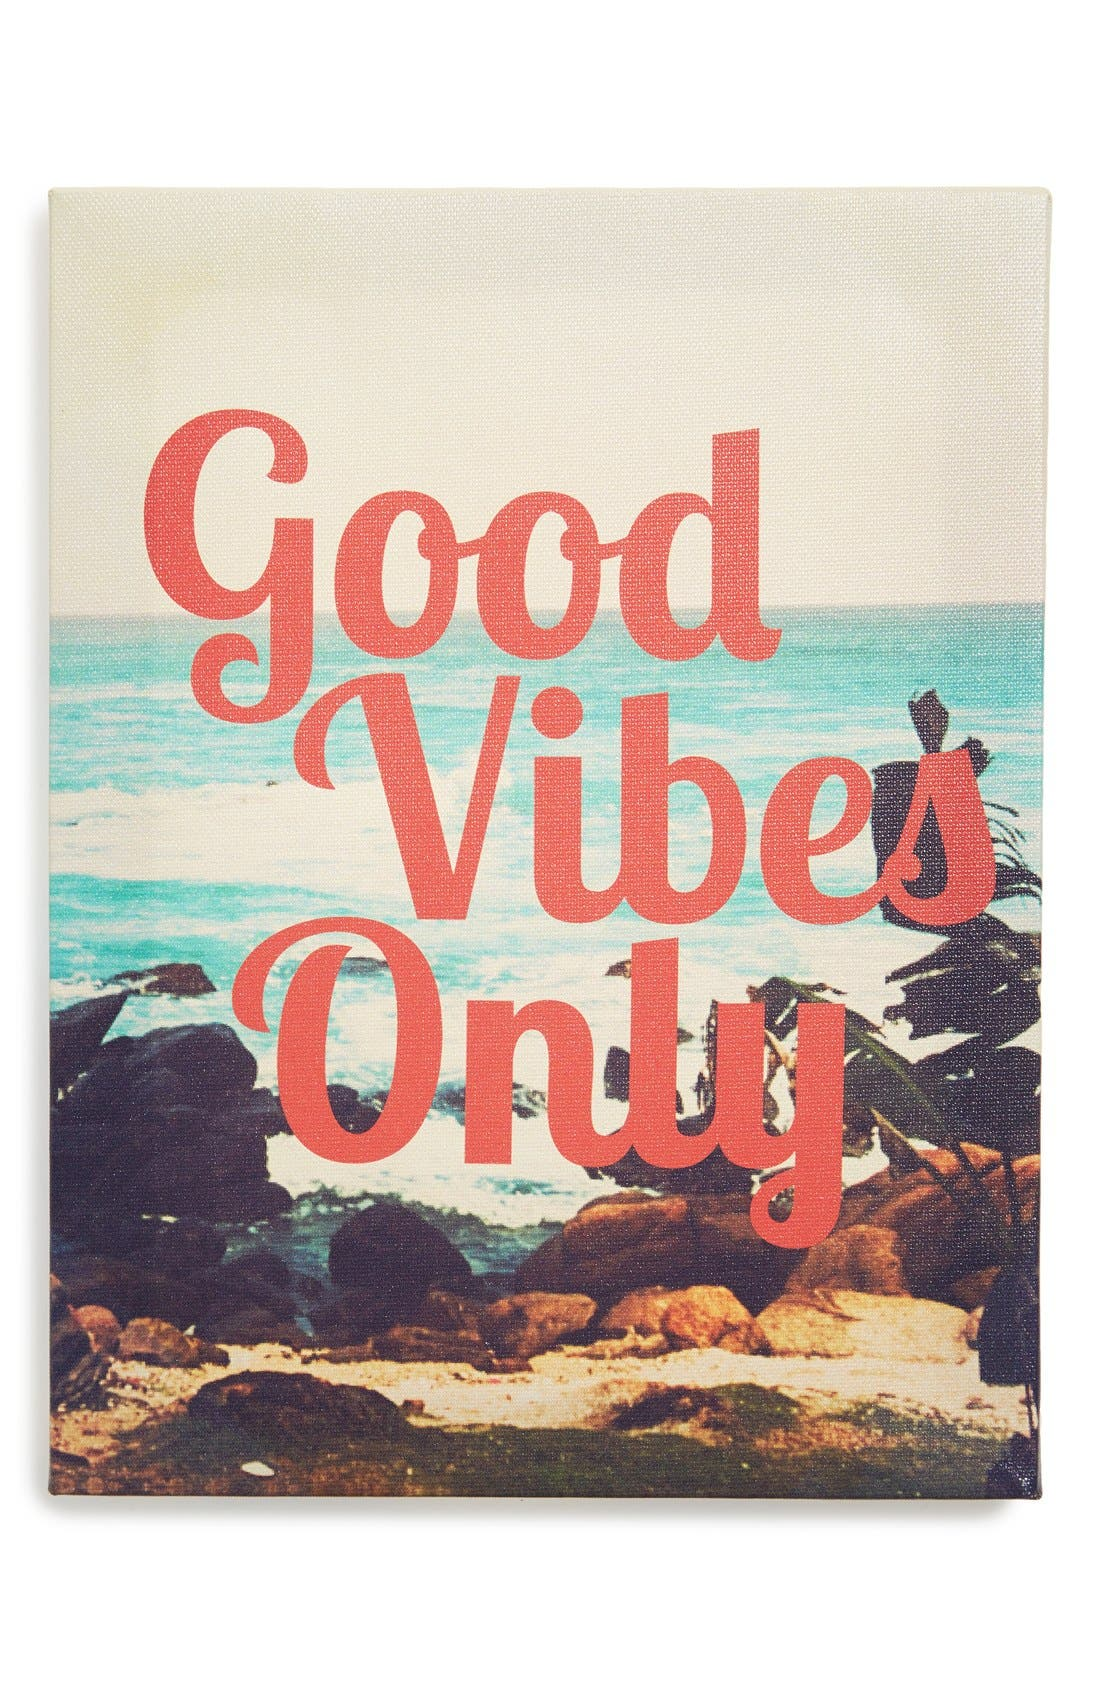 Alternate Image 1 Selected - Ankit 'Good Vibes Only' Wall Art